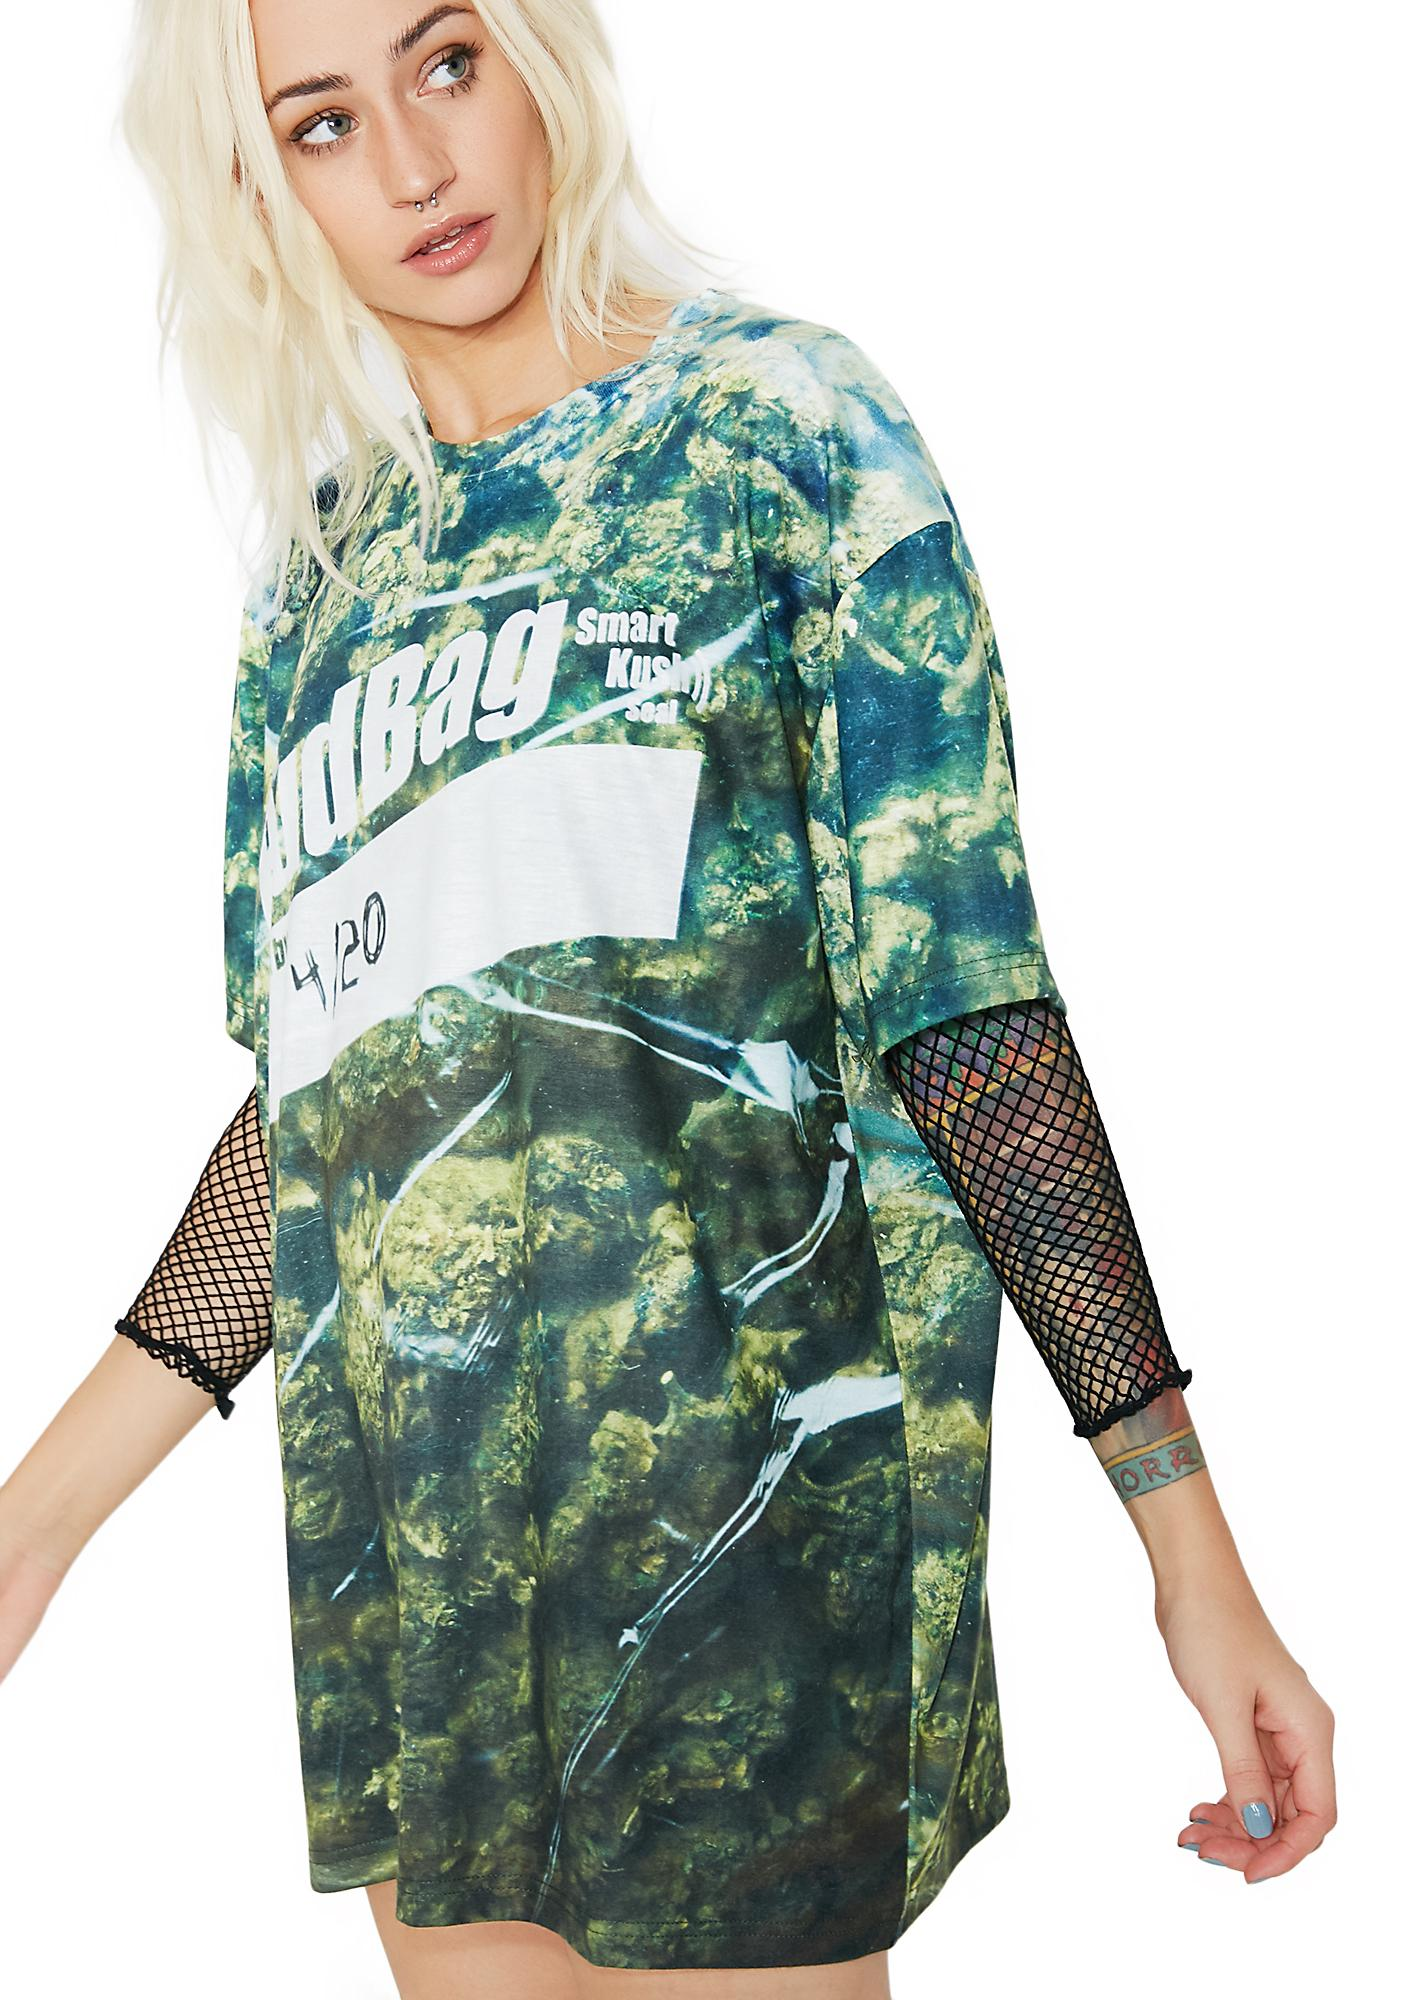 Bag Of Pot Tee